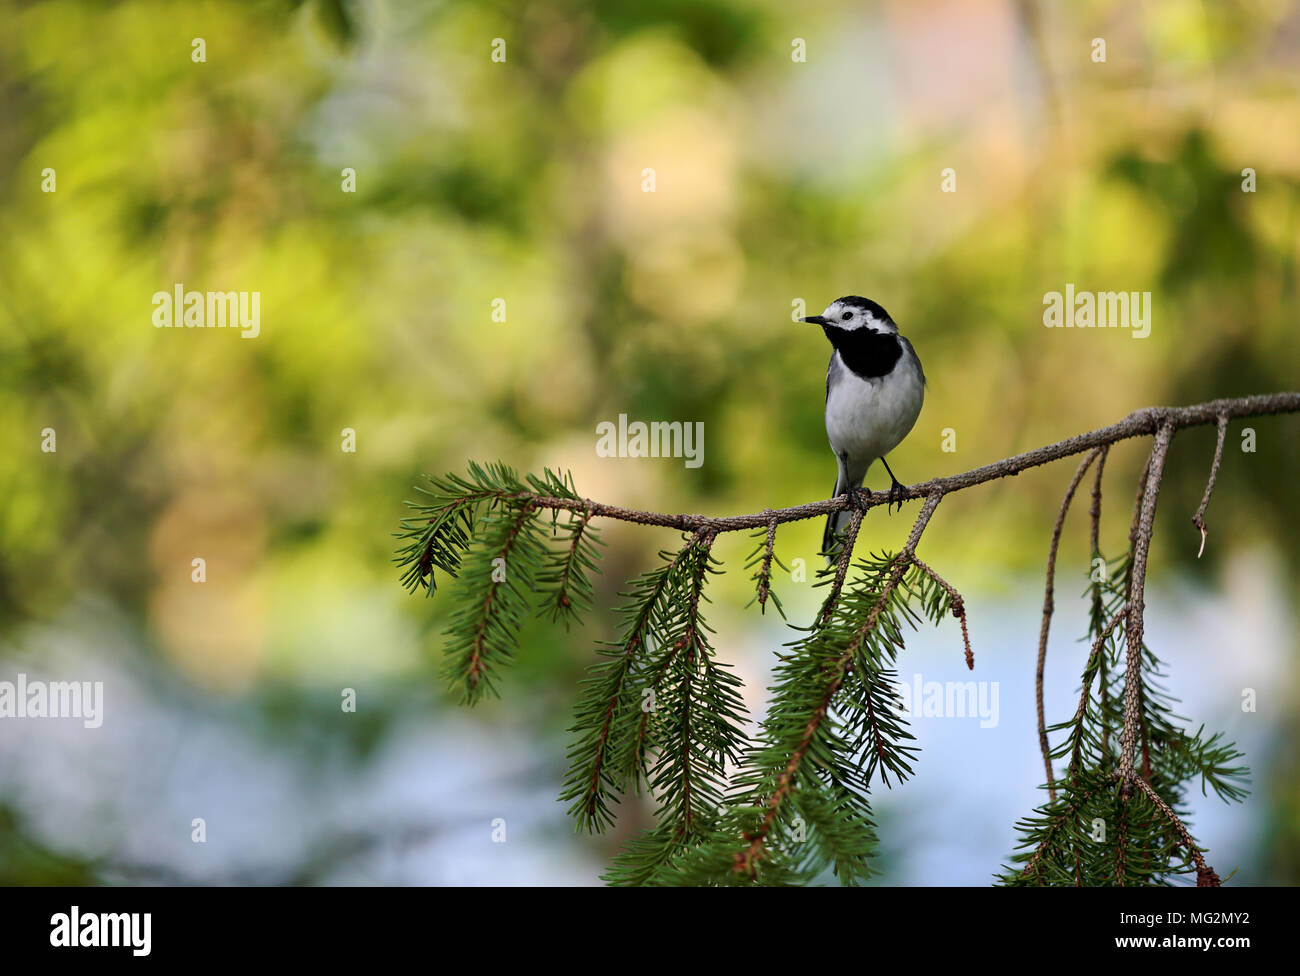 Wagtail standing  on spruce branch - Stock Image